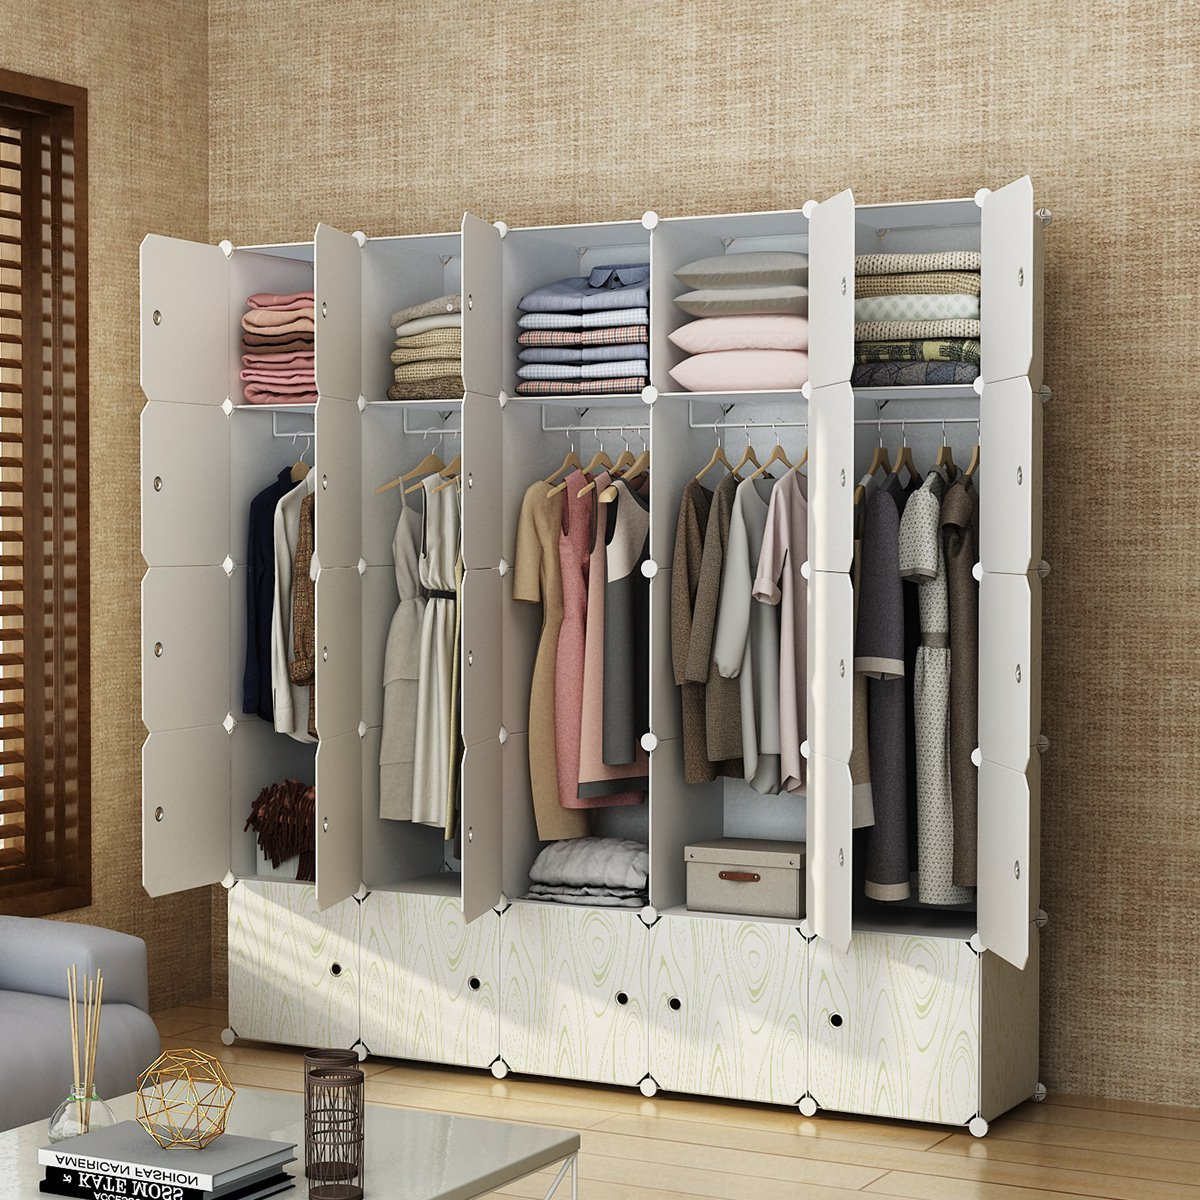 Best 5 Stylish And Classical Bedroom Armoires And Closet